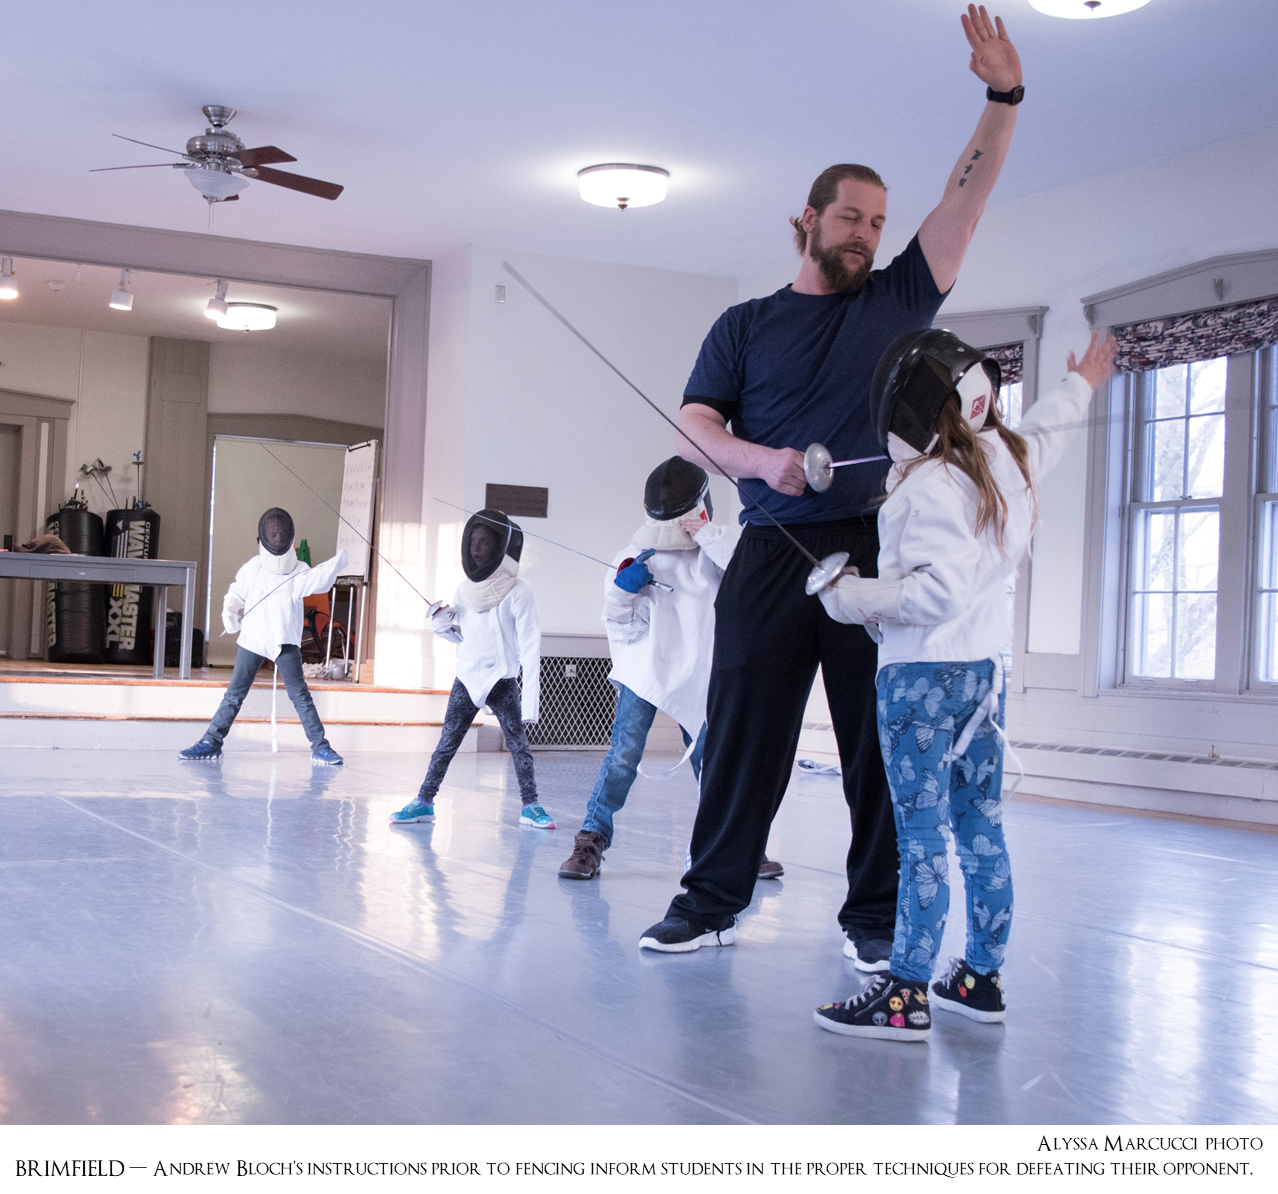 Hitchcock Academy invites you to take a stab at fencing